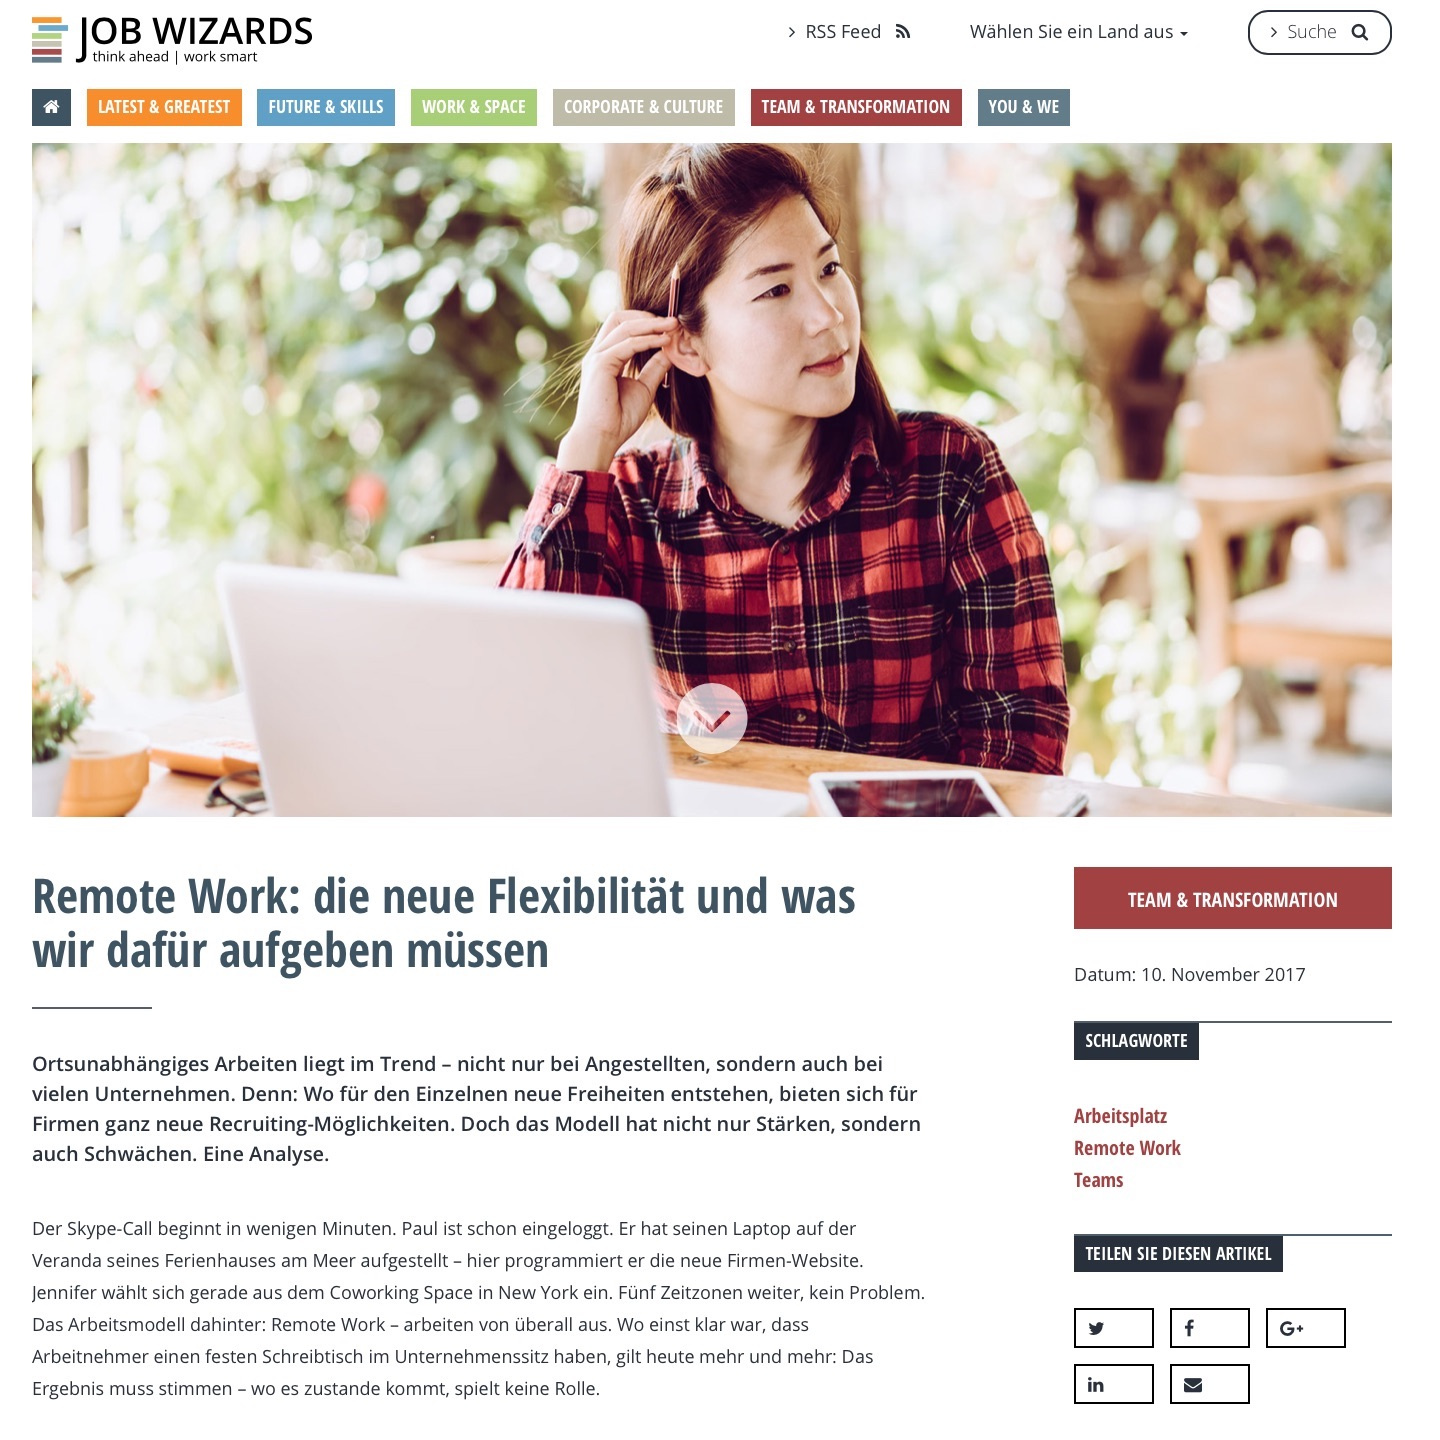 Job Wizards Remote Work